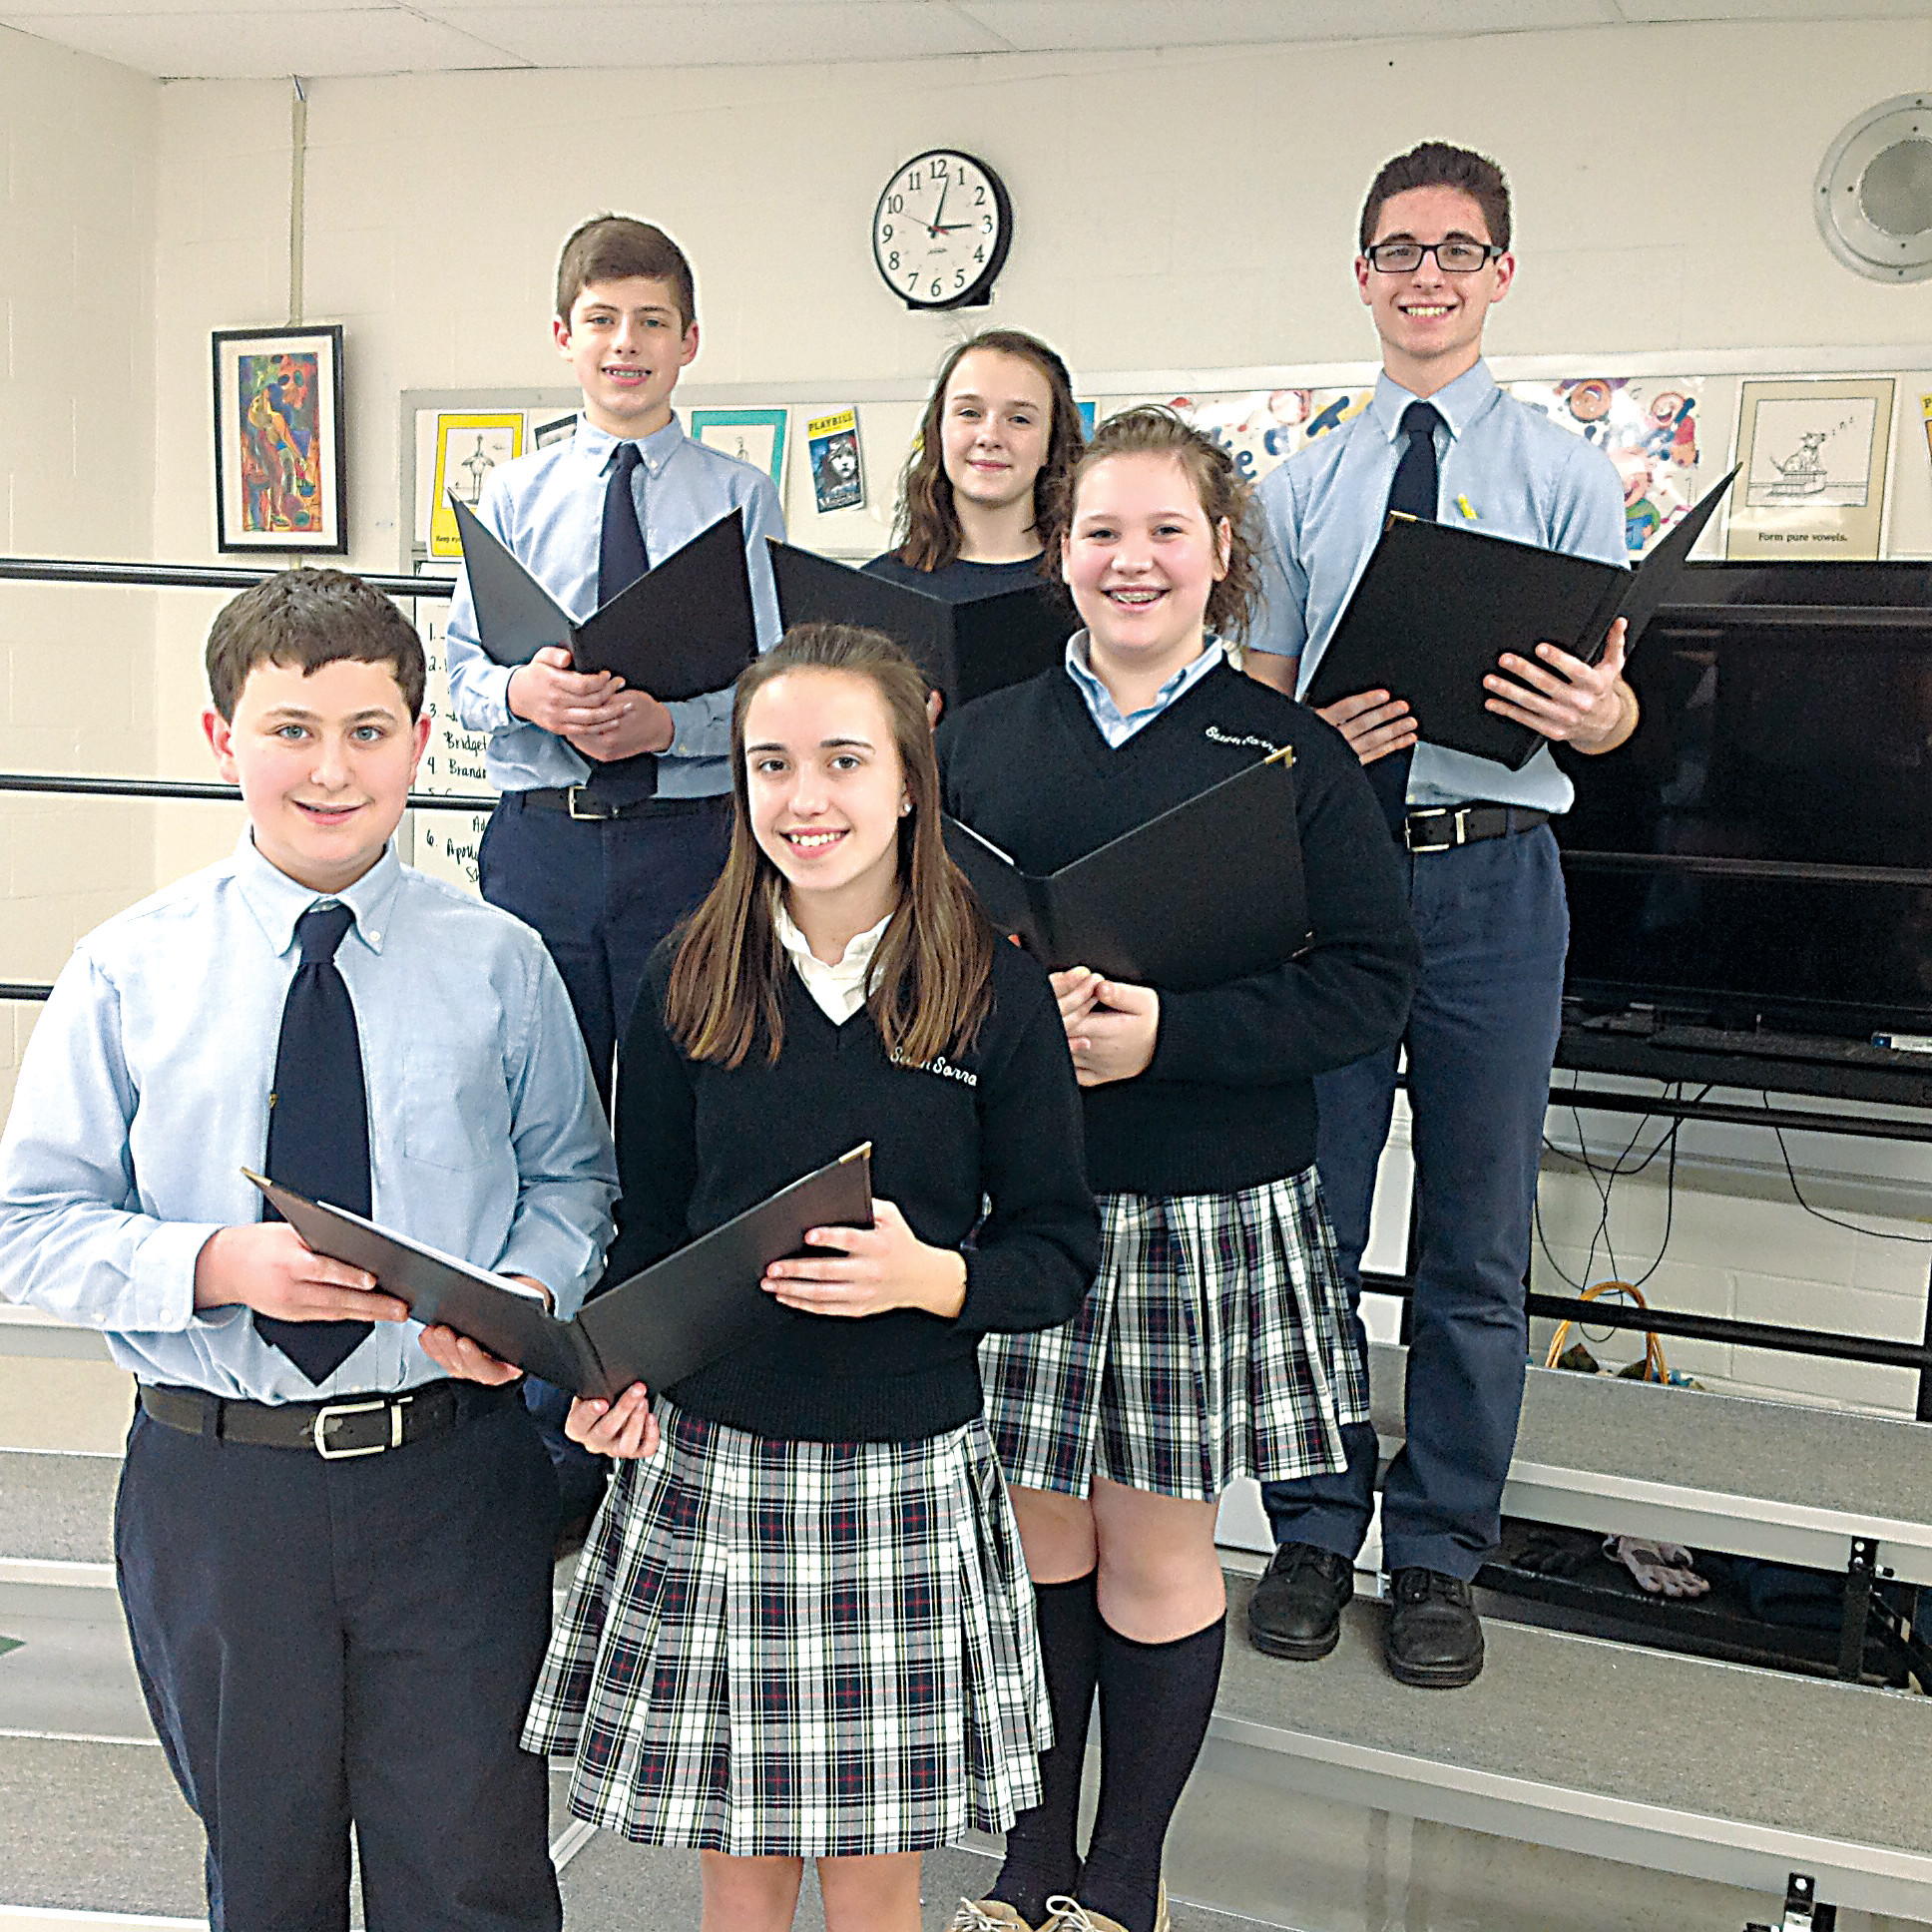 The following Seven Sorrows BVM students were chosen to participate in the Dauphin County School Chorus Festival on Saturday, March 25, at The Forum, Harrisburg. Front row, left to right, Michael Astfalk and Jessica Barb. Second row, Francesco Cangialosi, Chloe Cleland, Alaina Zeager and Ricky Stains.